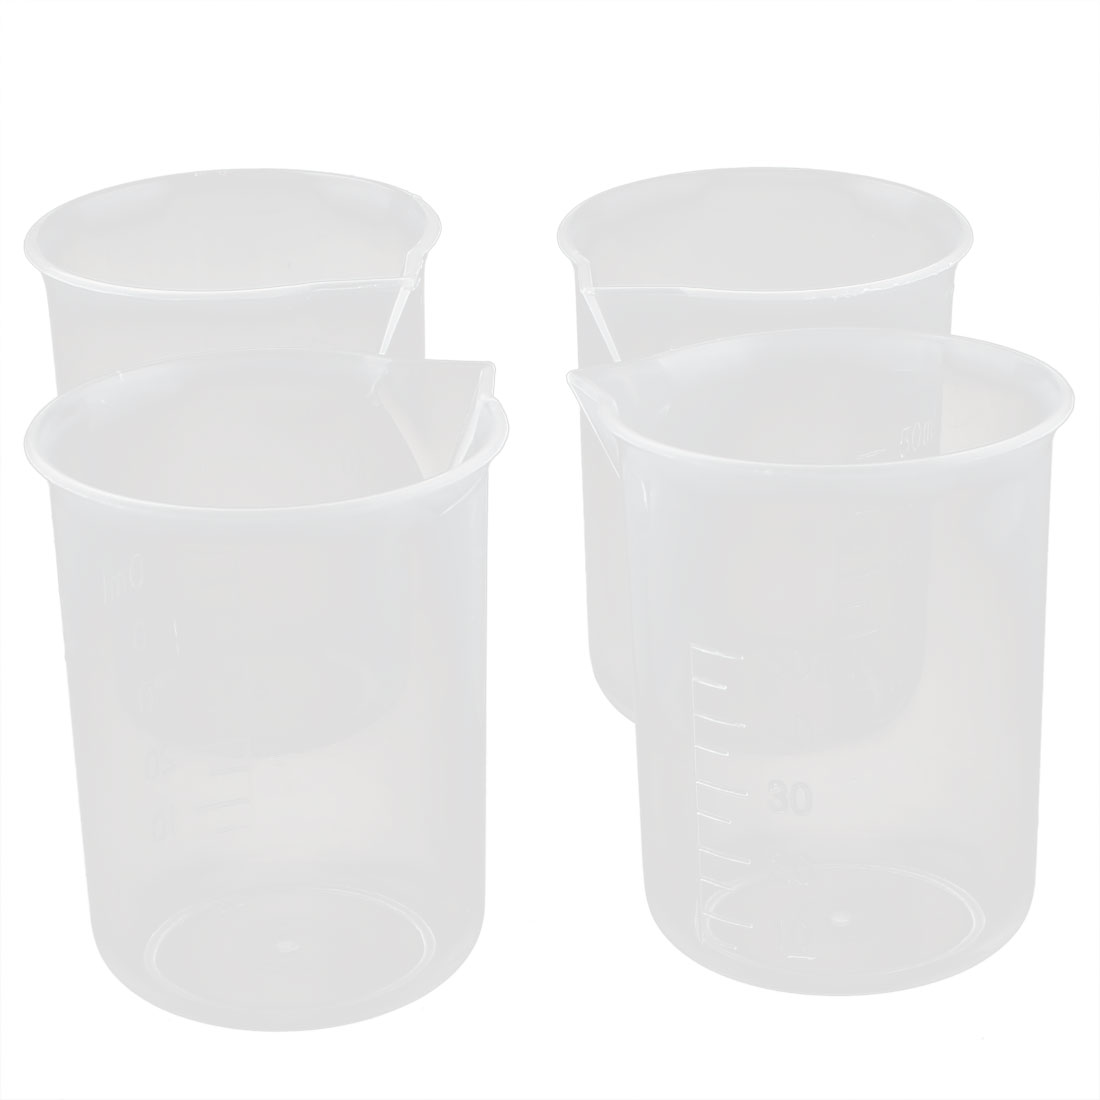 Kitchen Lab Transparent Plastic Graduated Measuring Cup Beaker Tool 4pcs